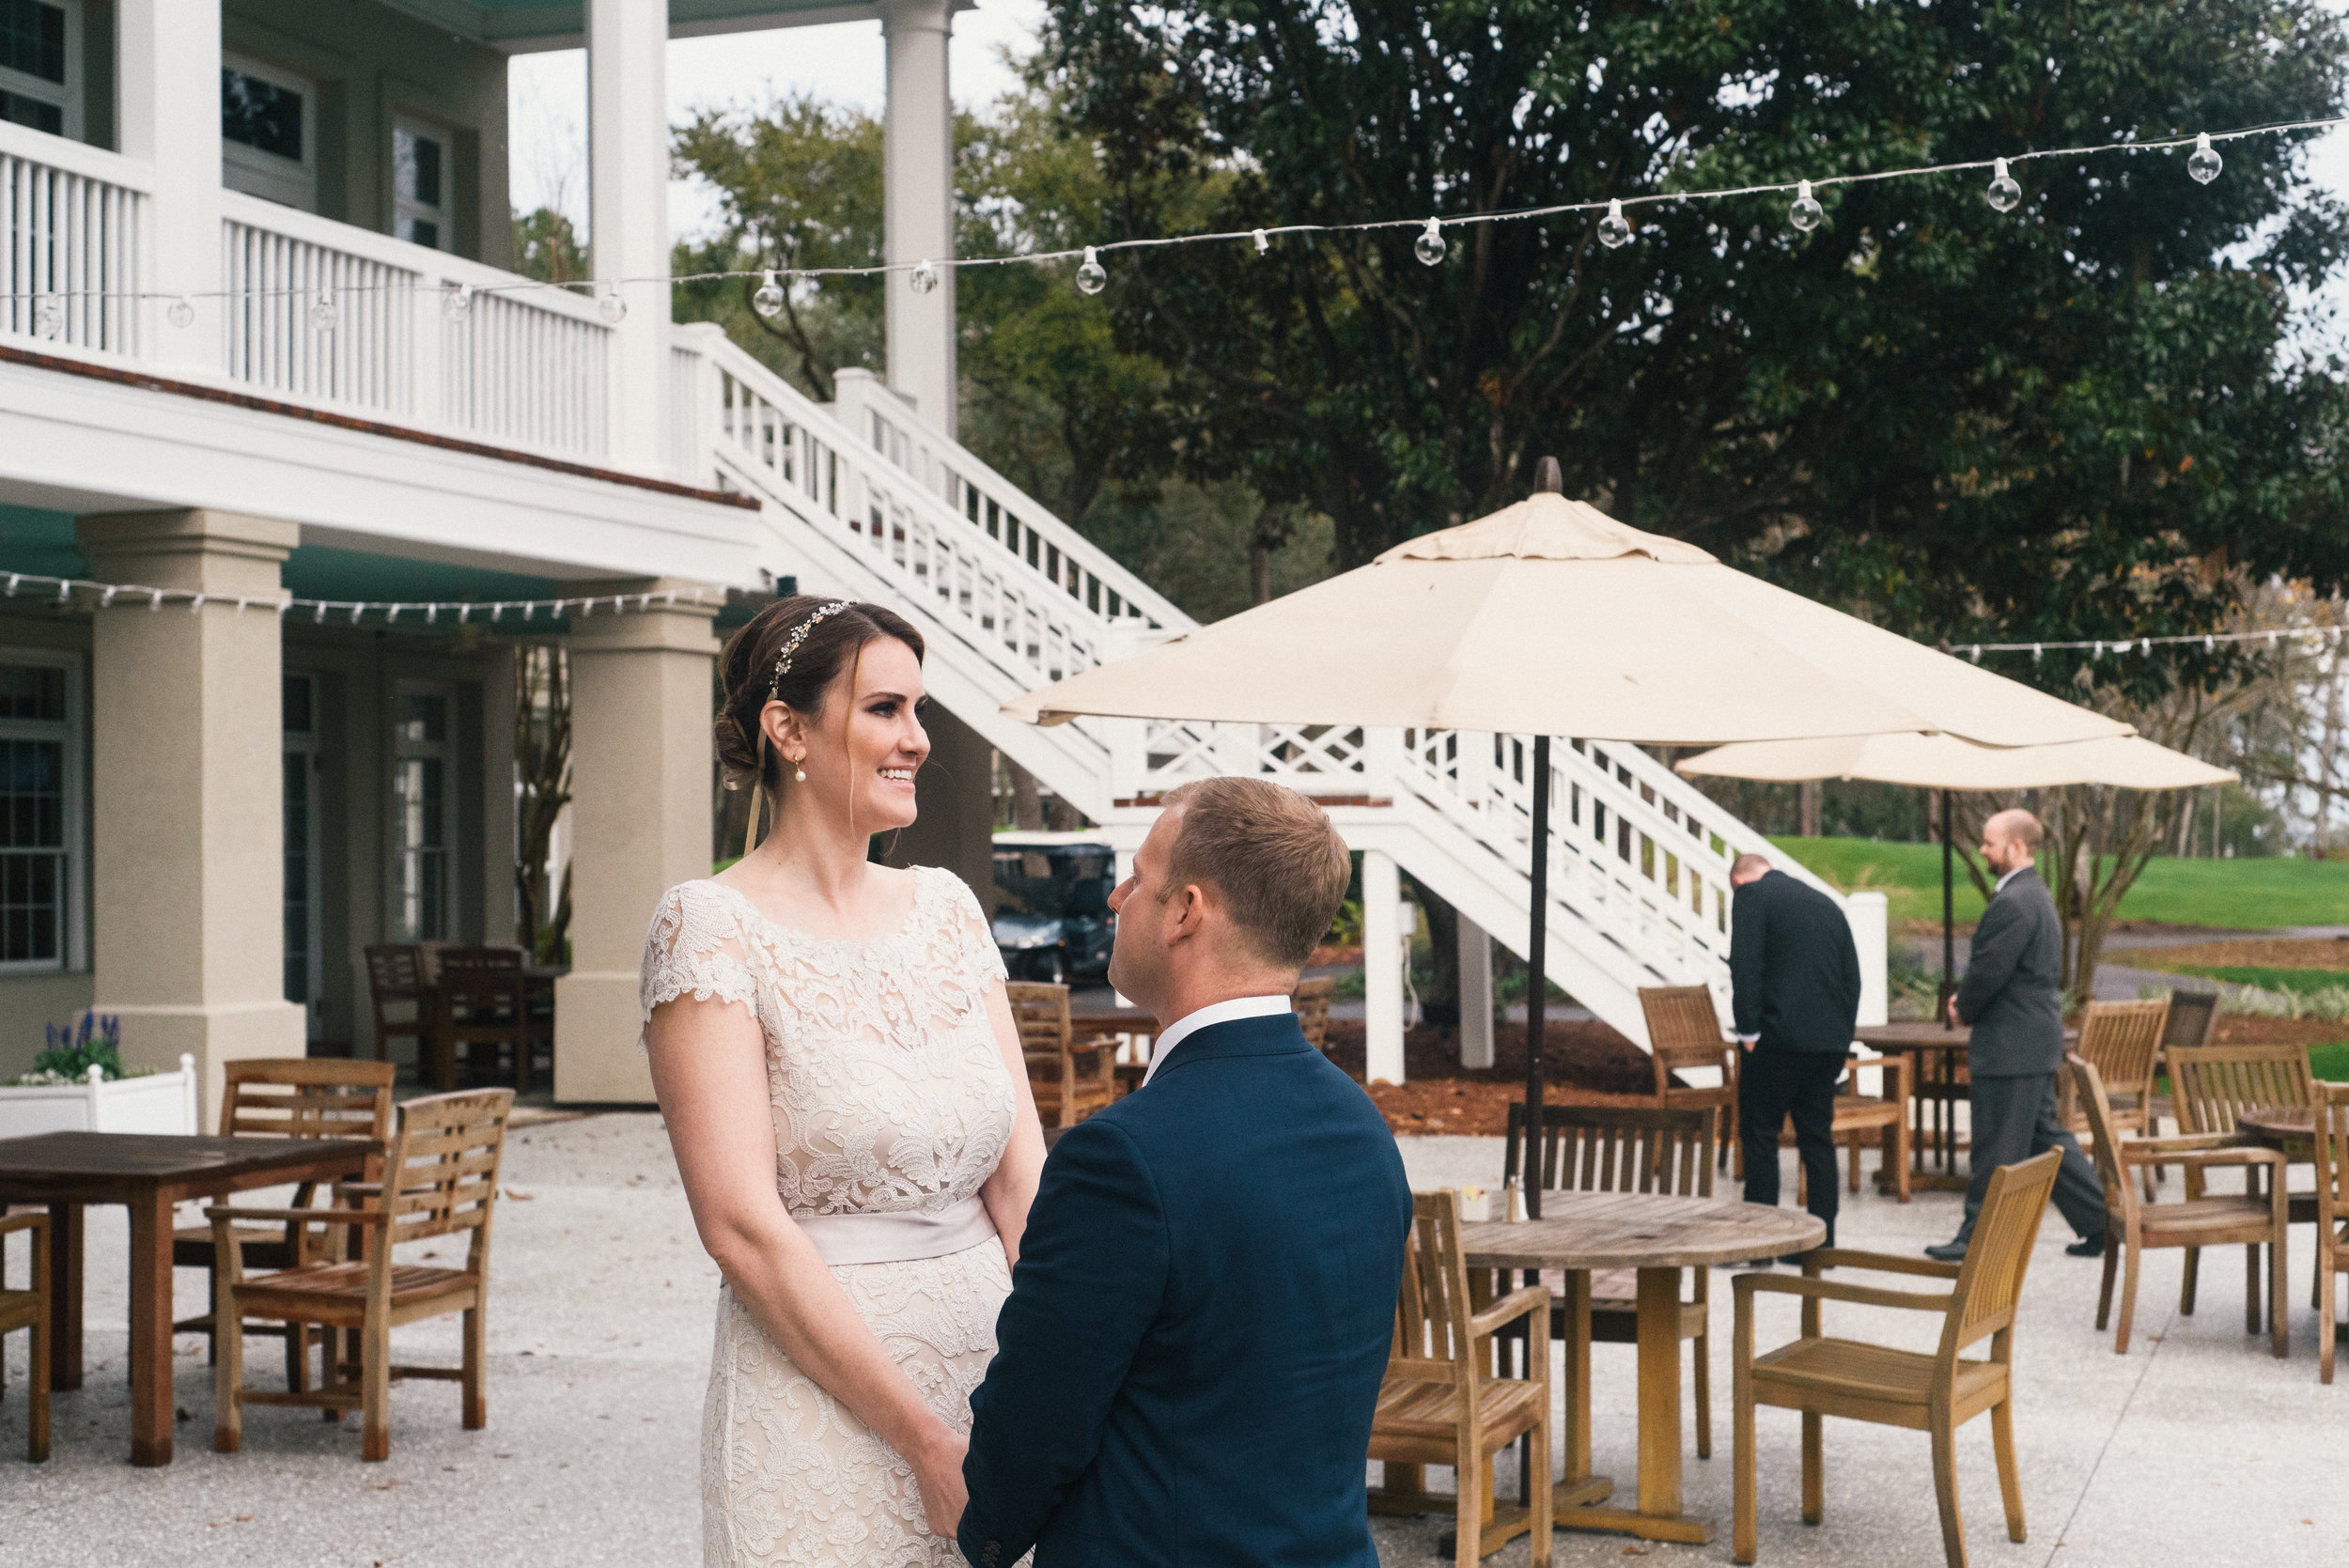 emily-and-david-daufuskie-island-wedding-december-wedding-meg-hill-photo- (347 of 728).jpg